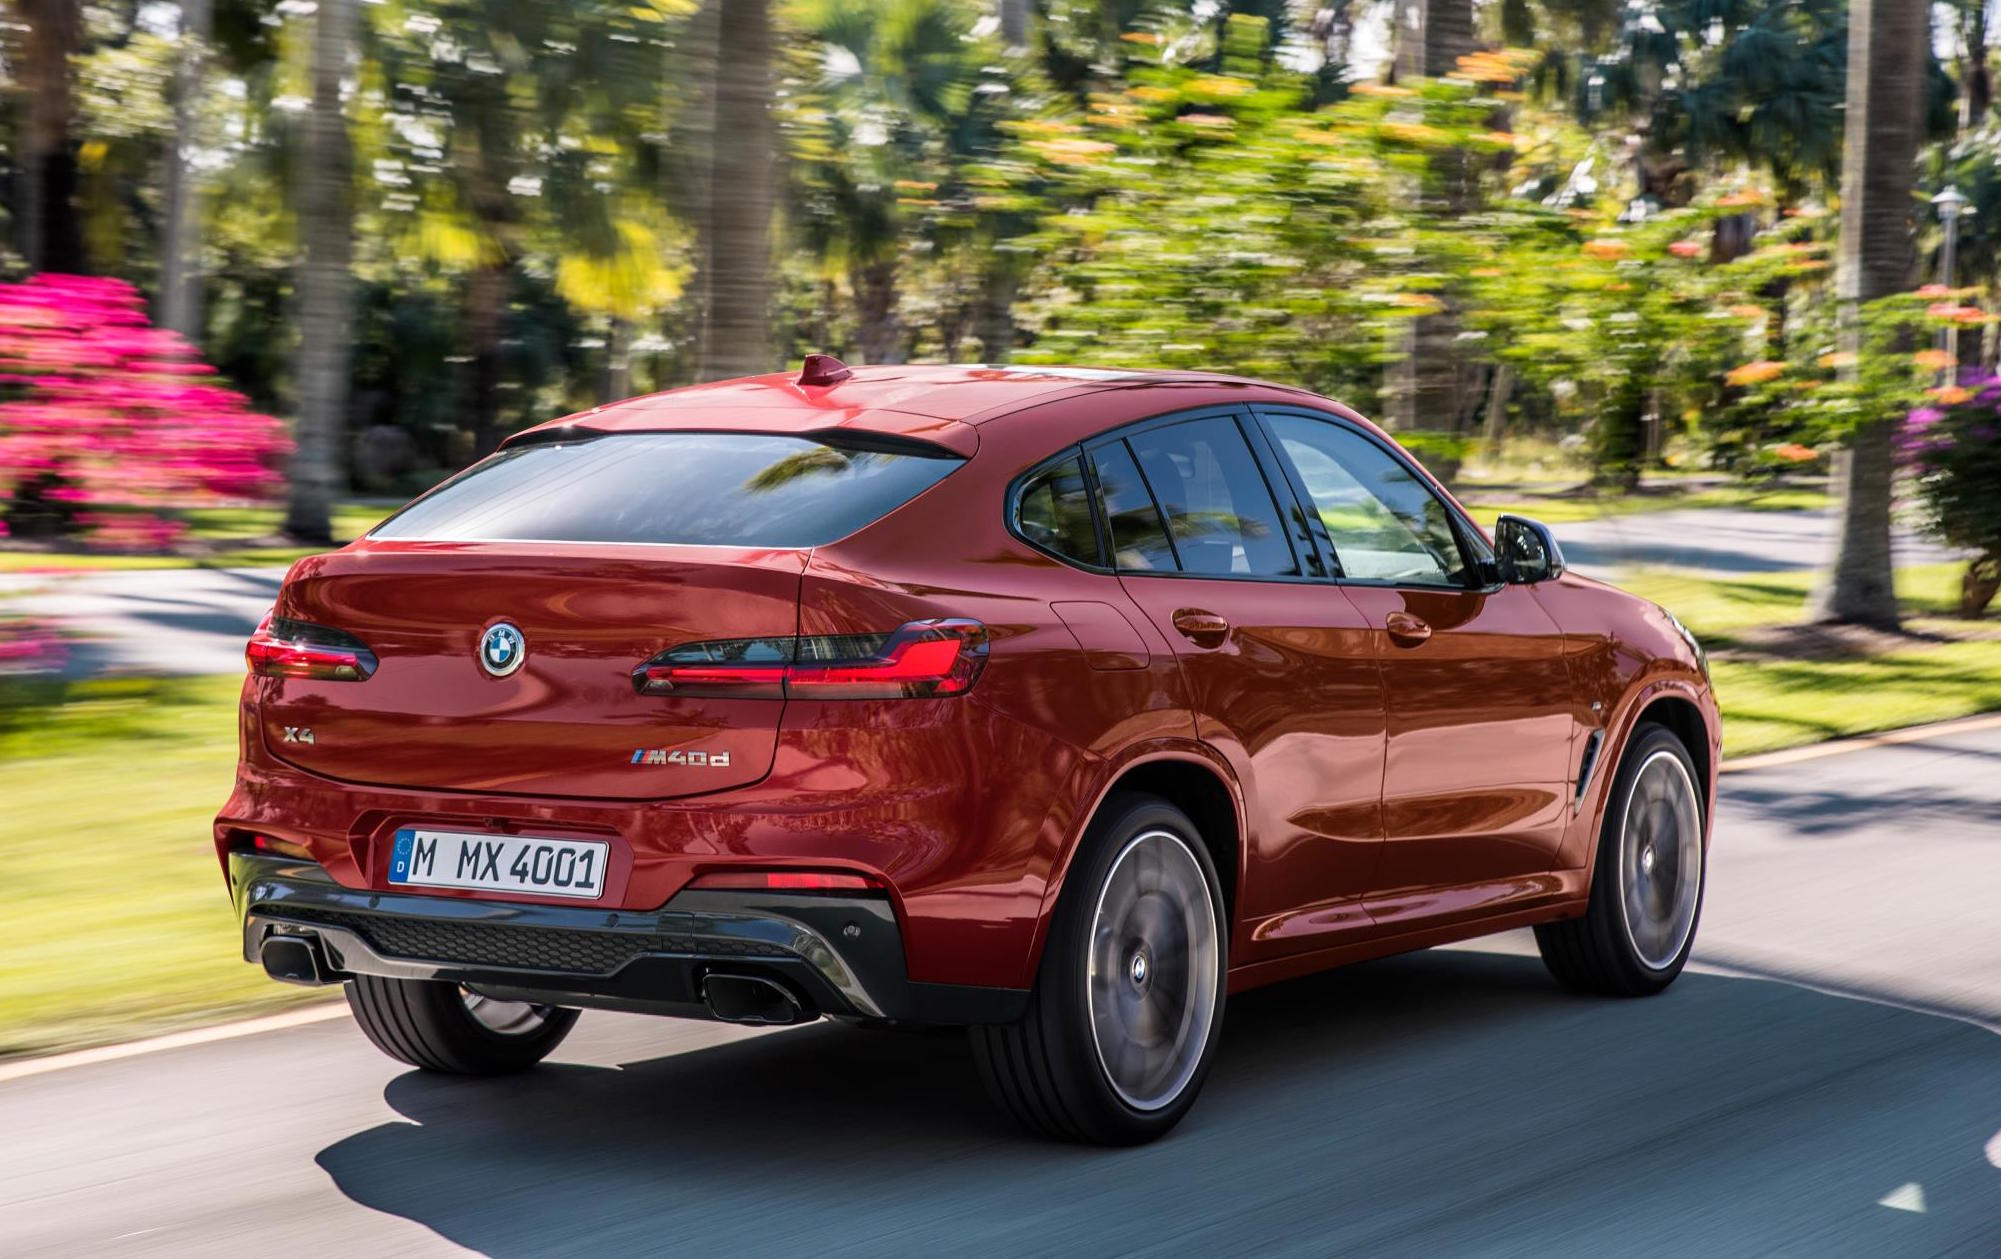 2018 BMW X4 revealed, M40d performance diesel confirmed ...